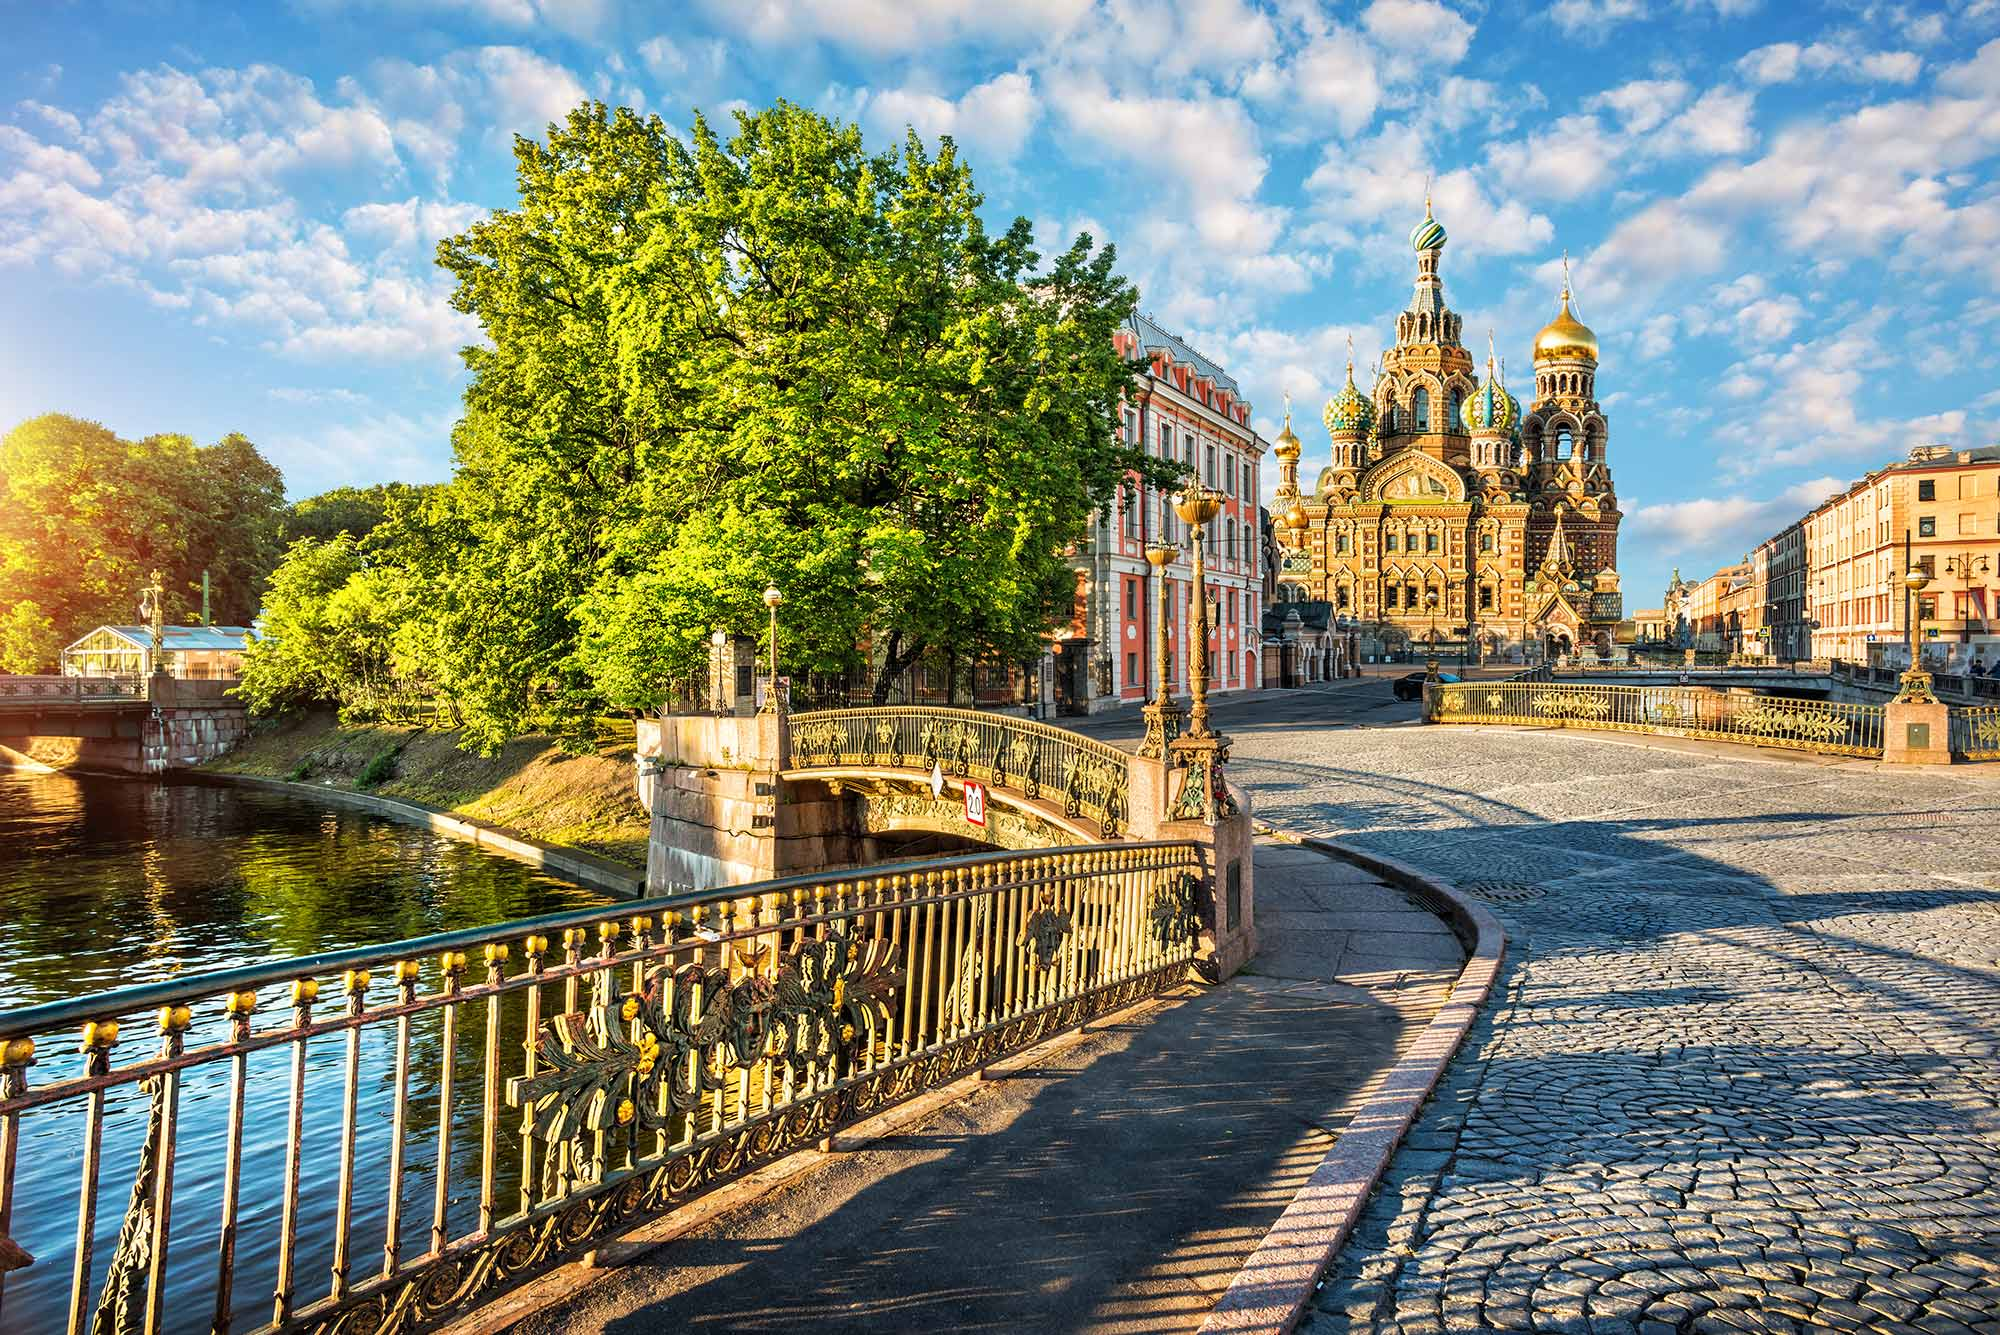 Church of the Savior on Spilled Blood, St Petersburg.